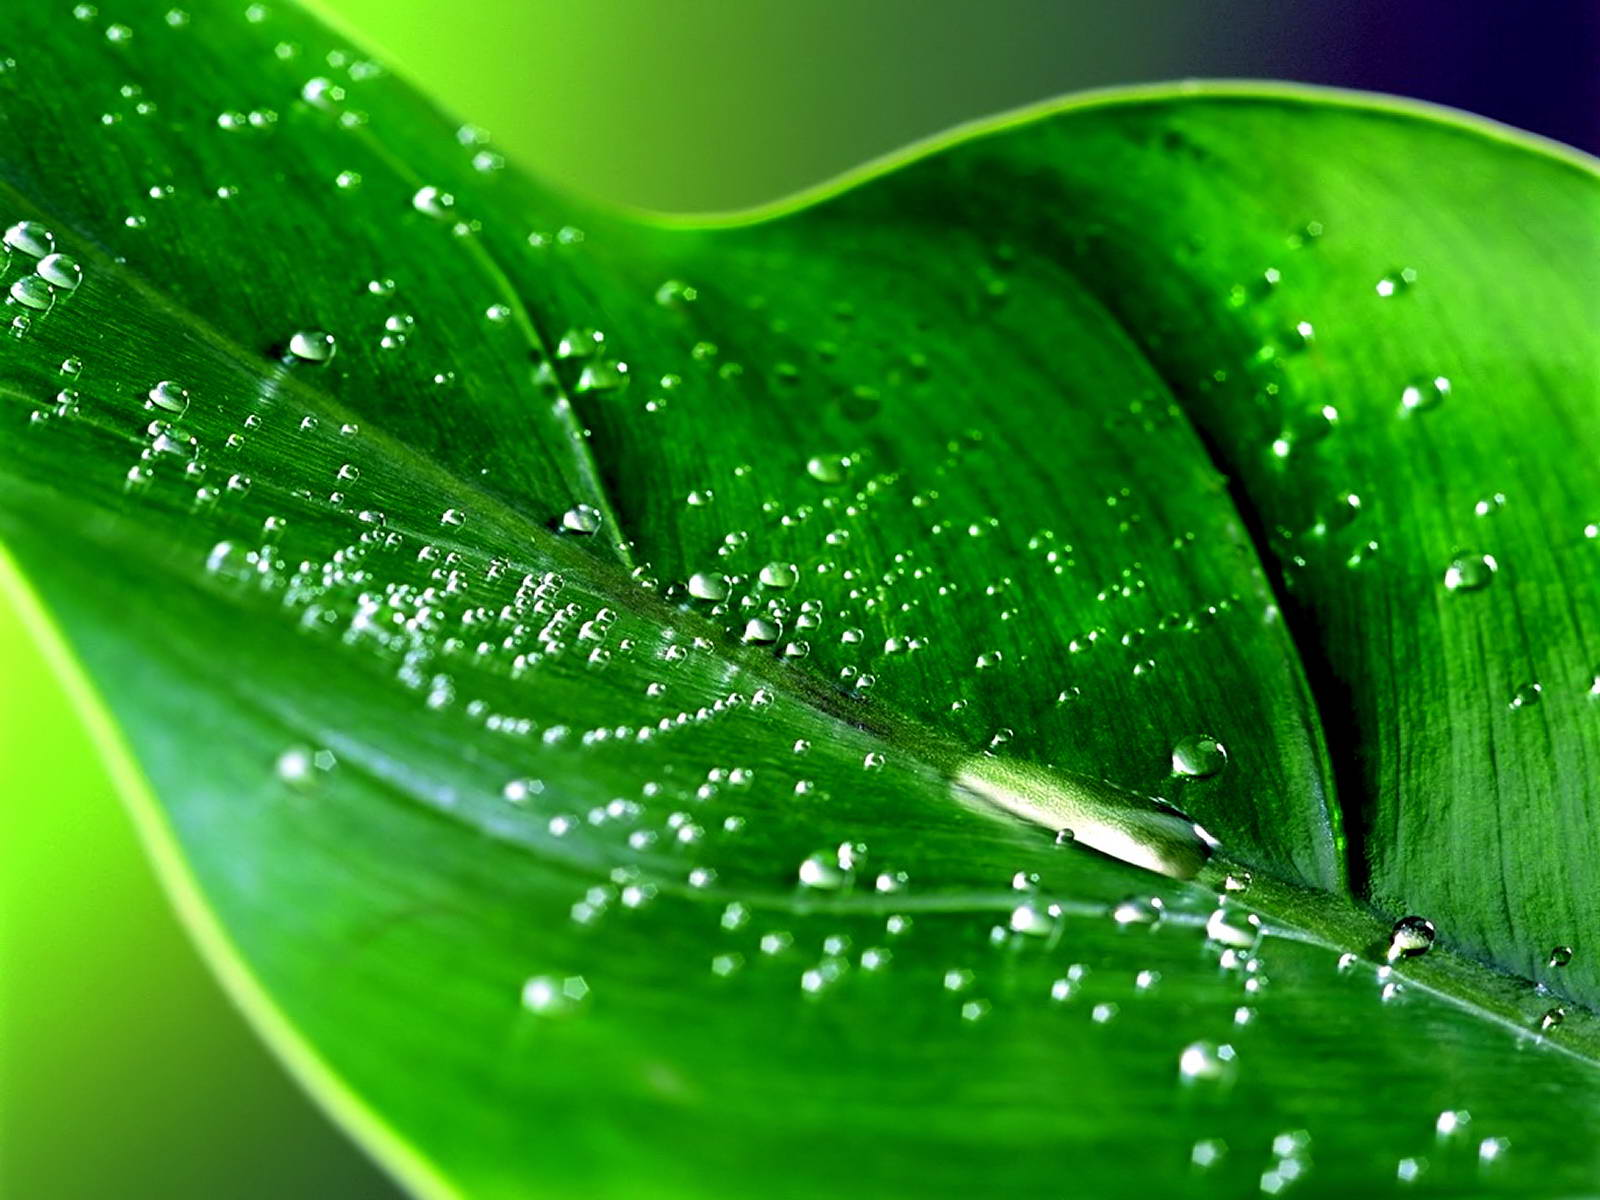 http://4.bp.blogspot.com/-Abe7yufSBOs/UOtWqjBuG3I/AAAAAAAAArc/MTUnjuUznoA/s1600/summer+rain+drops+wallpaper+desktop+on+a+green+leaf+hd+lush.jpg